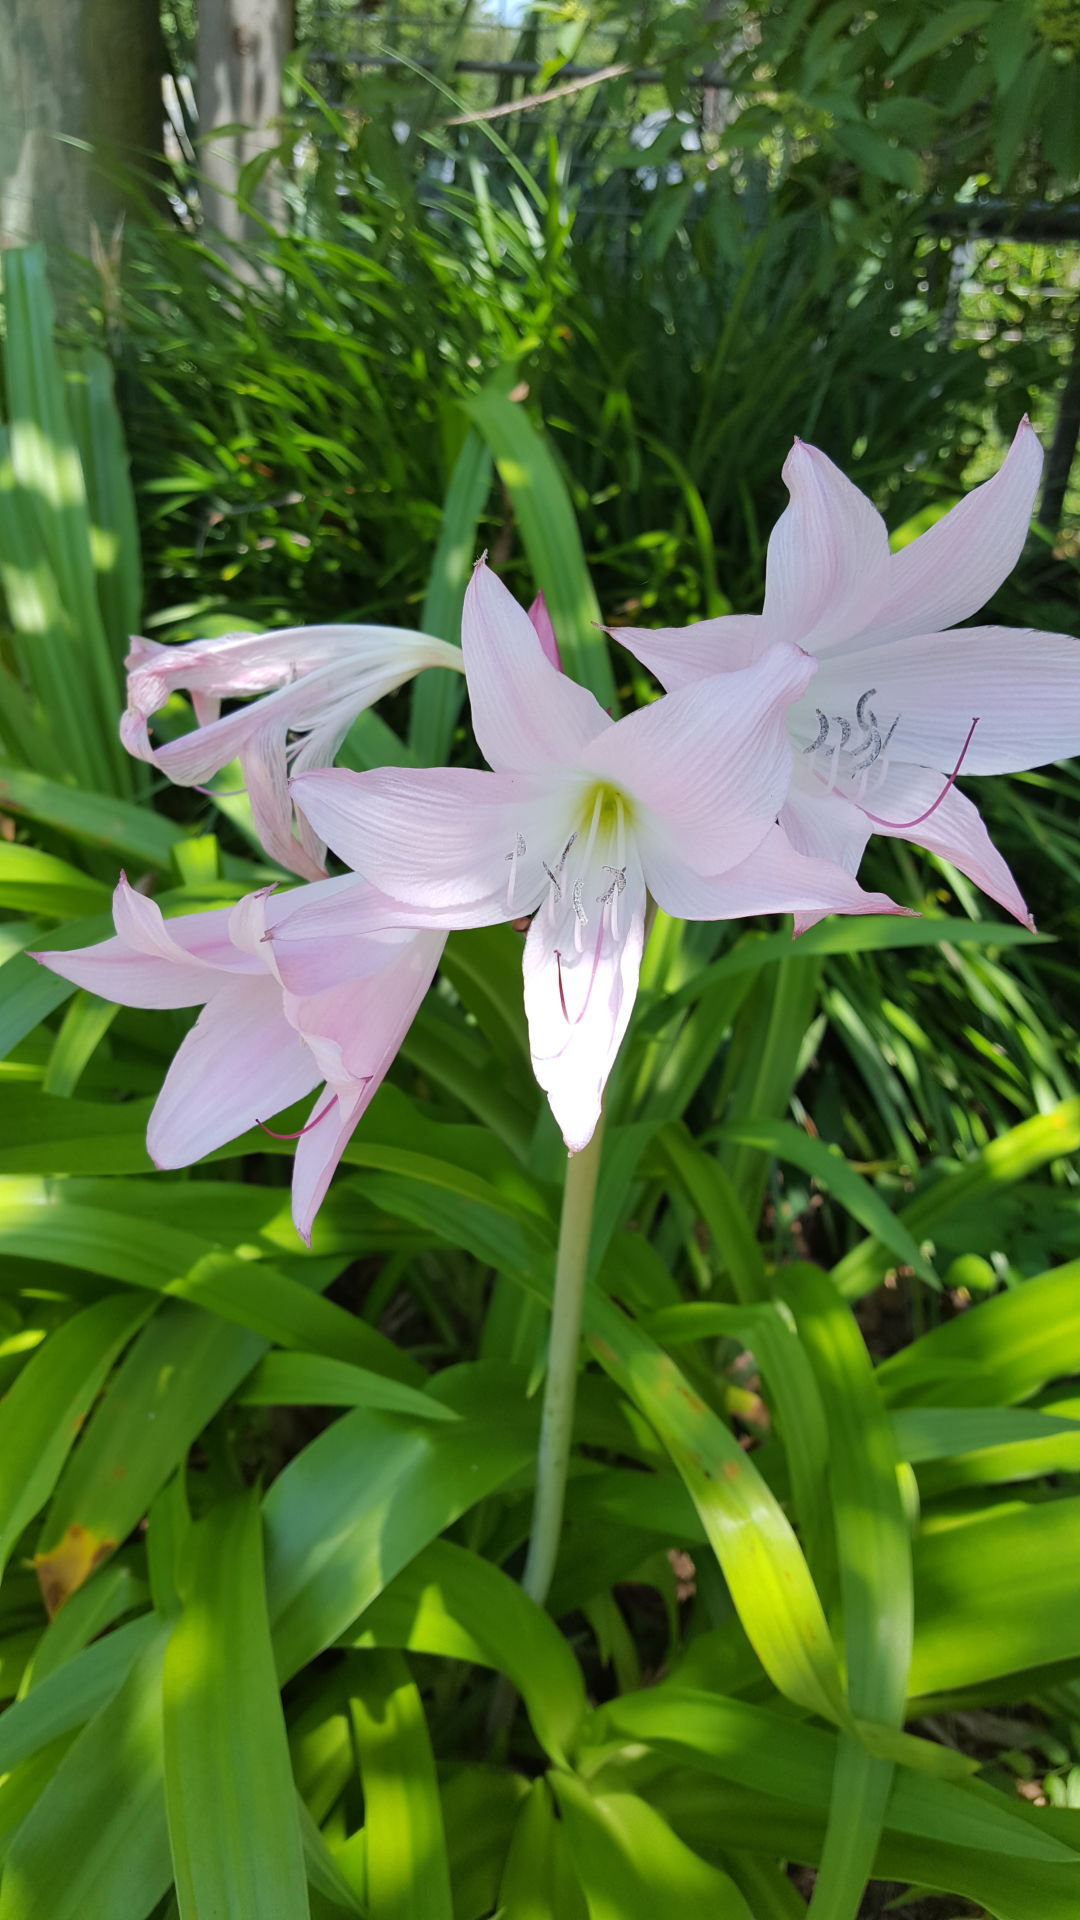 Flowers and plants: a selection of news